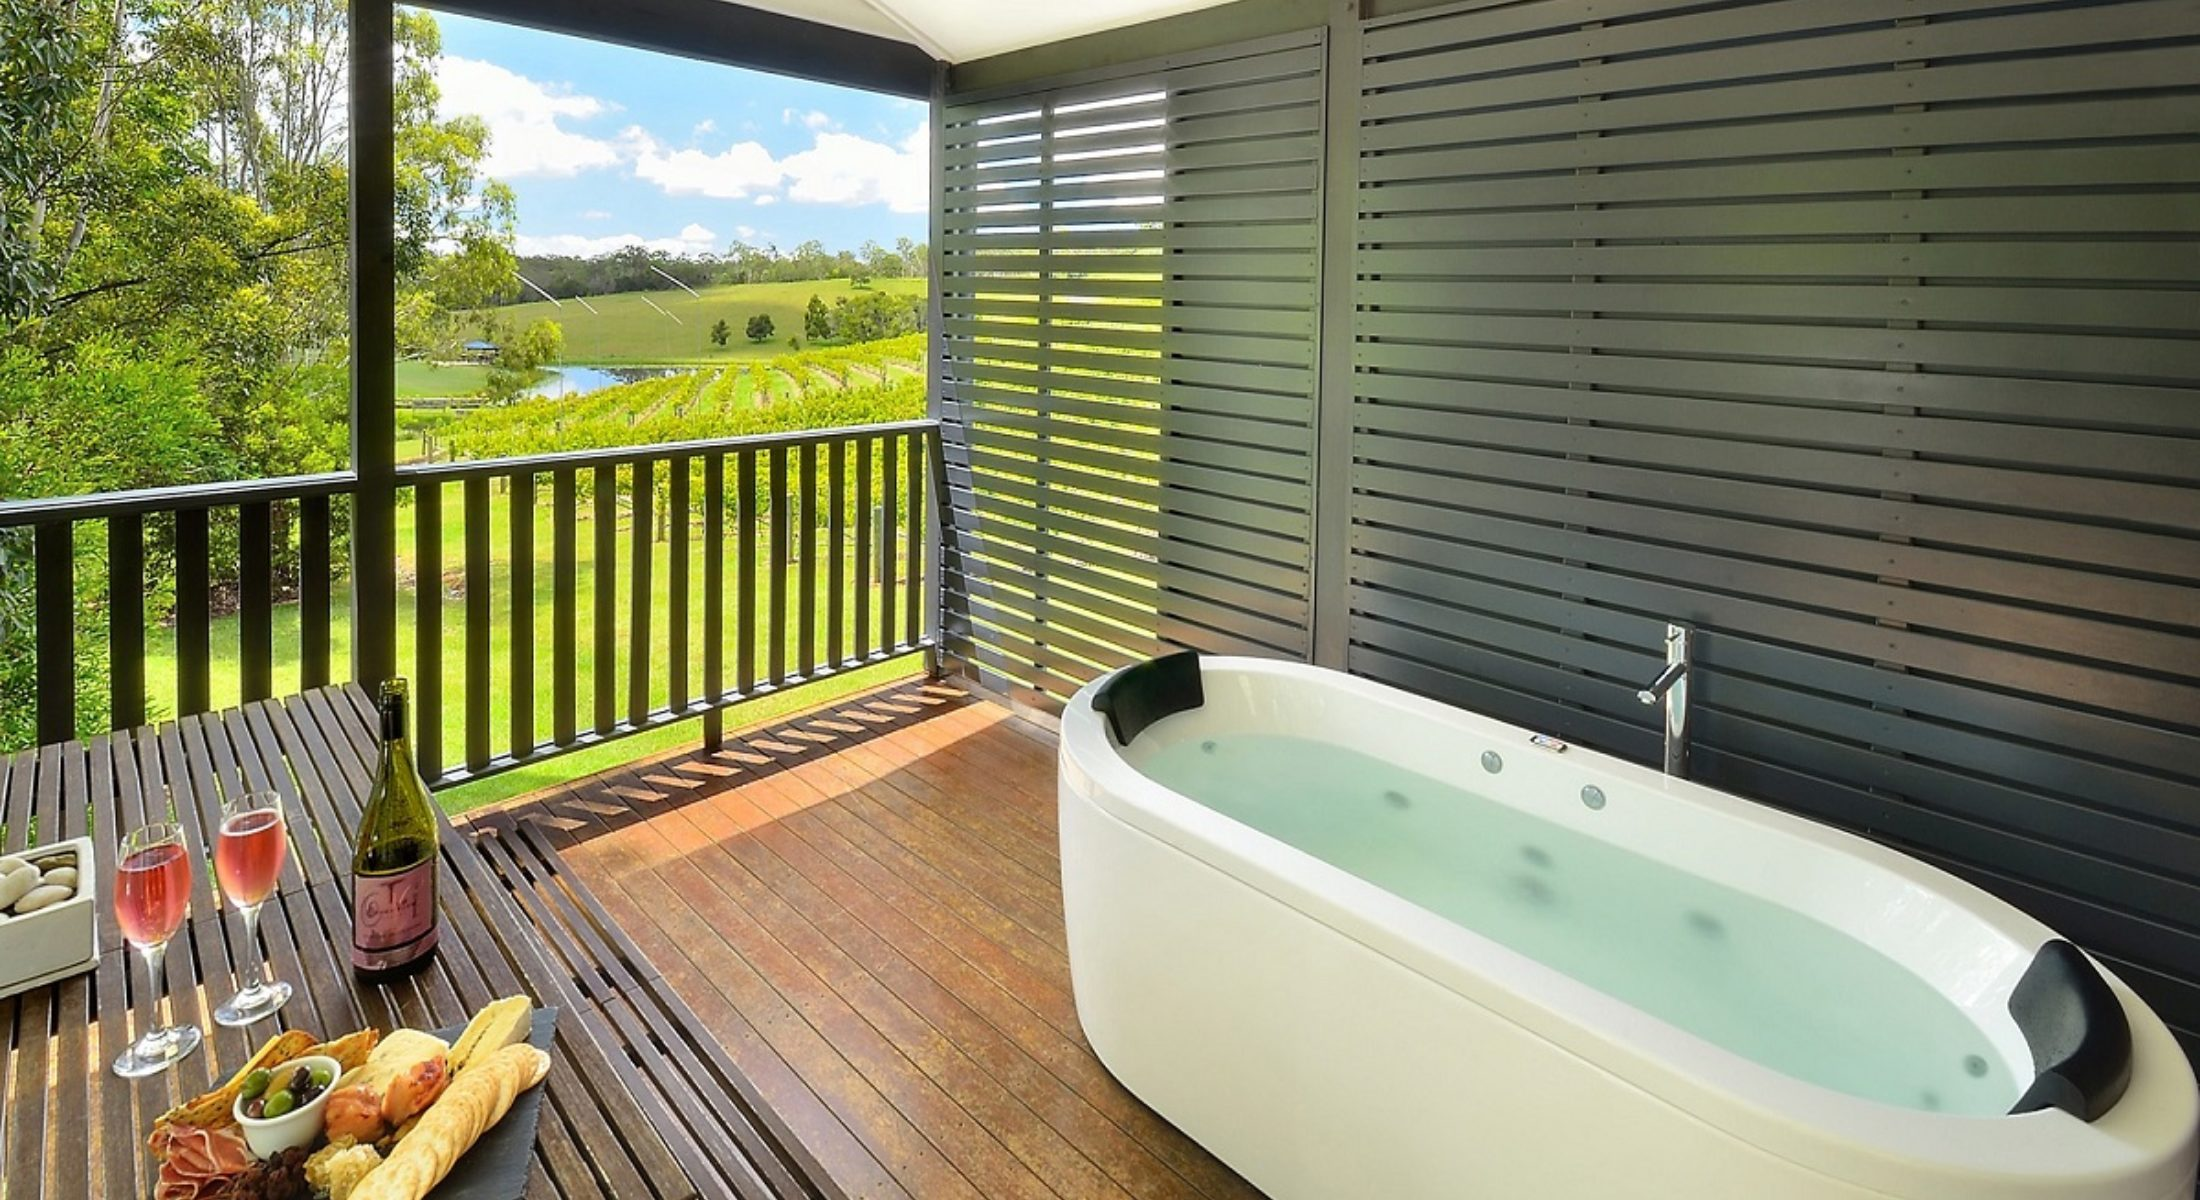 Ocean View Winery Beautiful Accom Spa View Moreton Bay Region